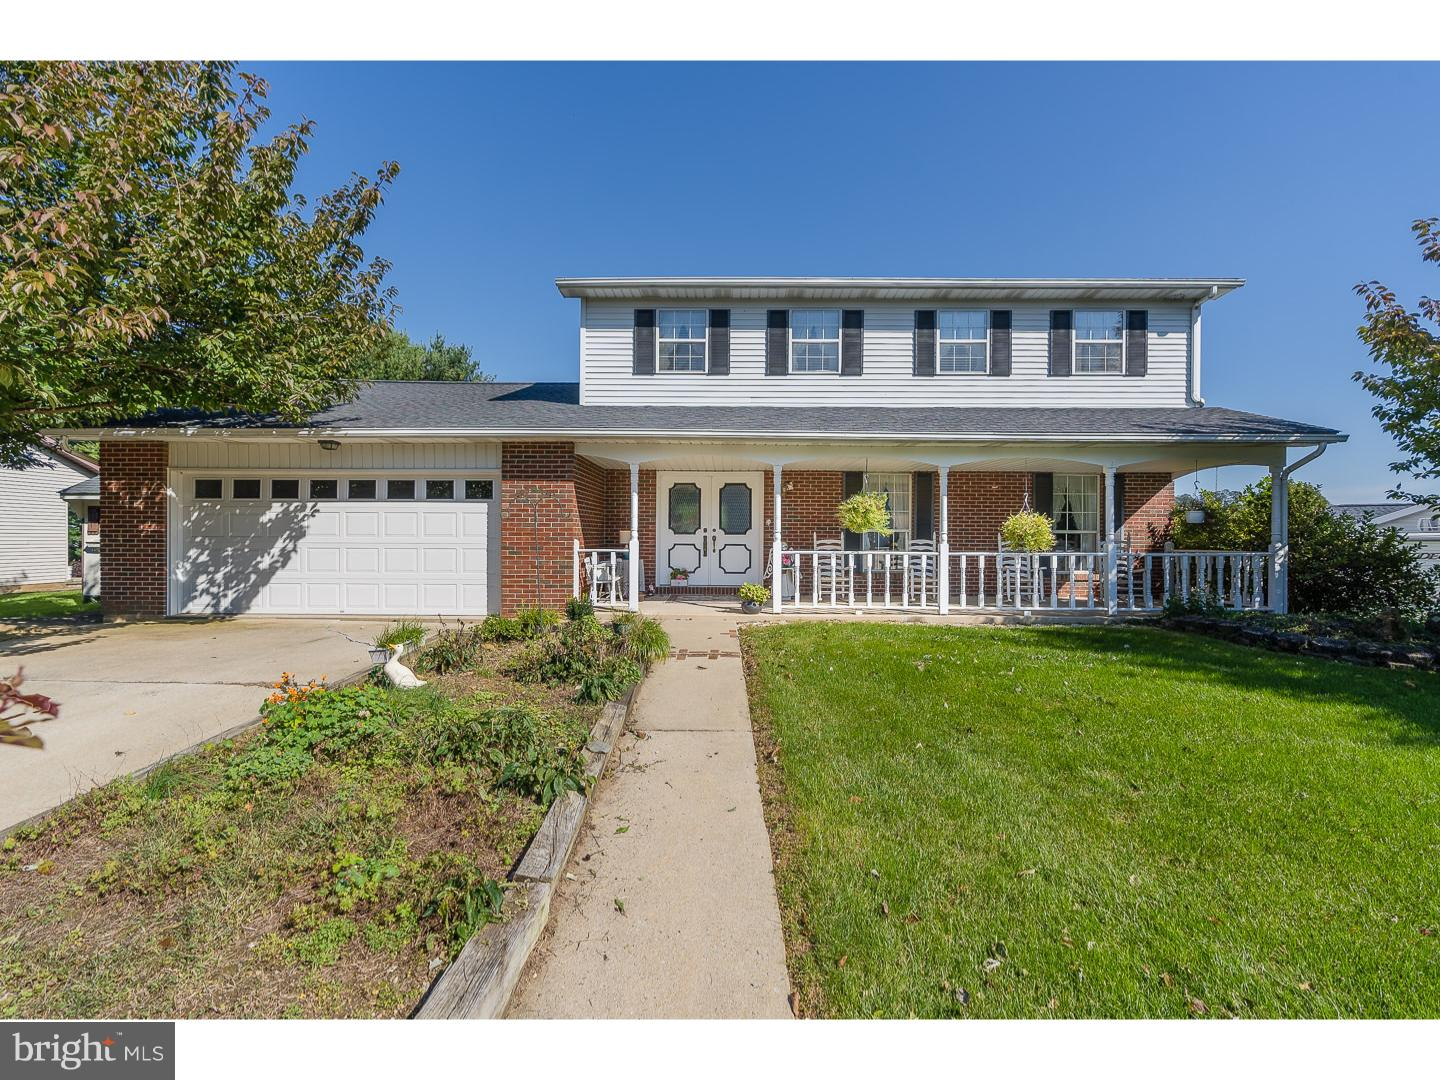 965 HILLCREST DR S, MACUNGIE, PA 18062